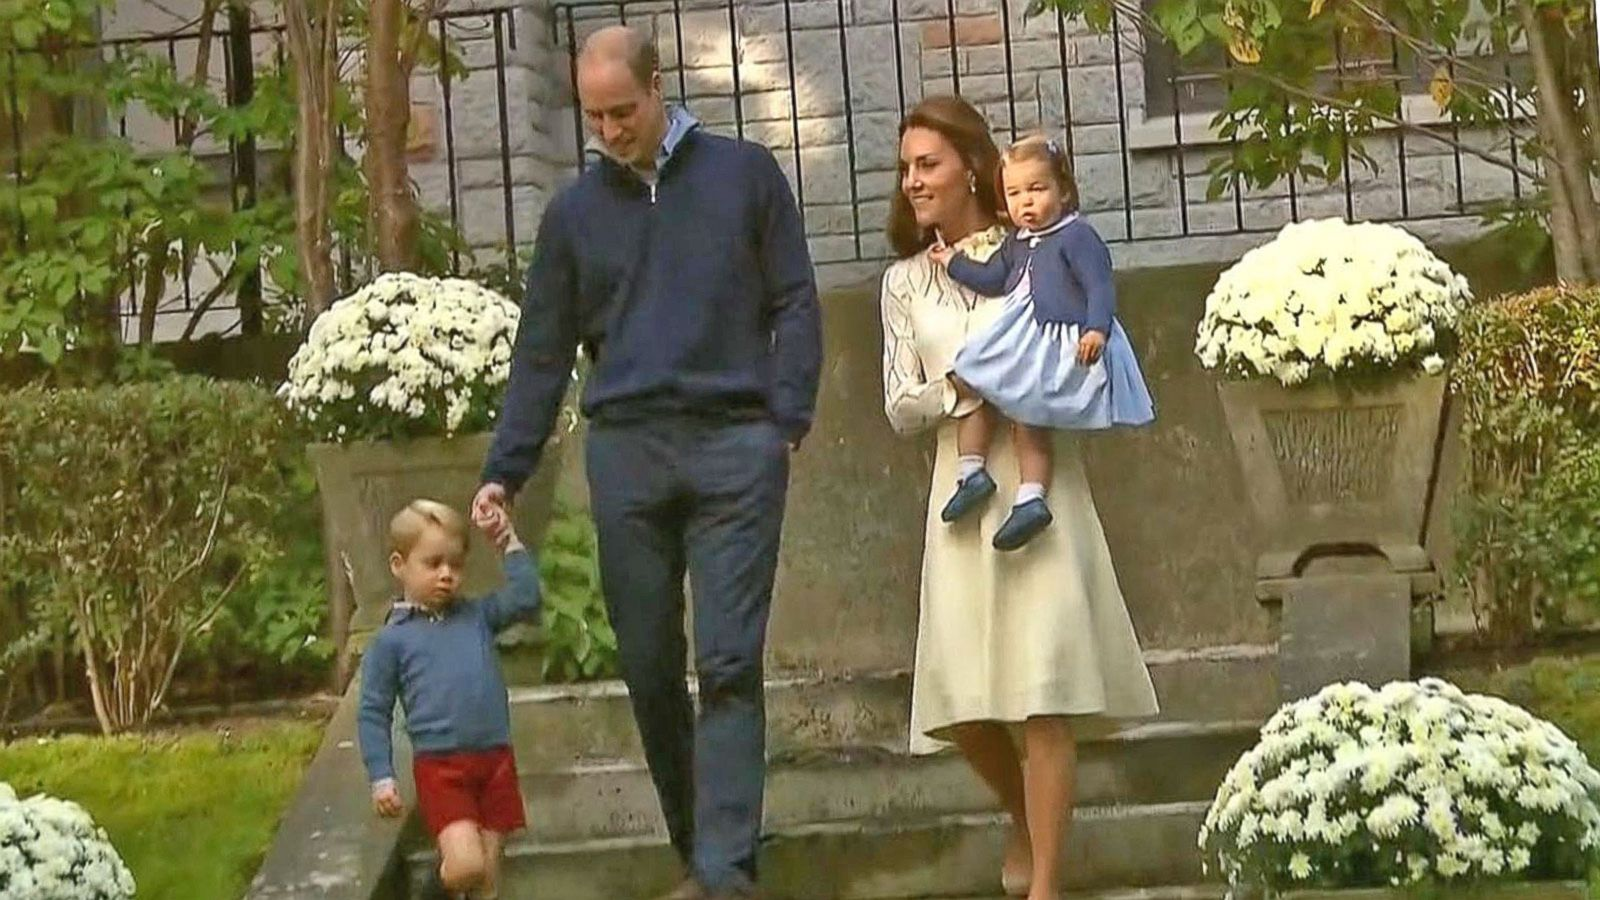 VIDEO: Prince William and Kate Middleton Set to Wrap Up Canada Visit